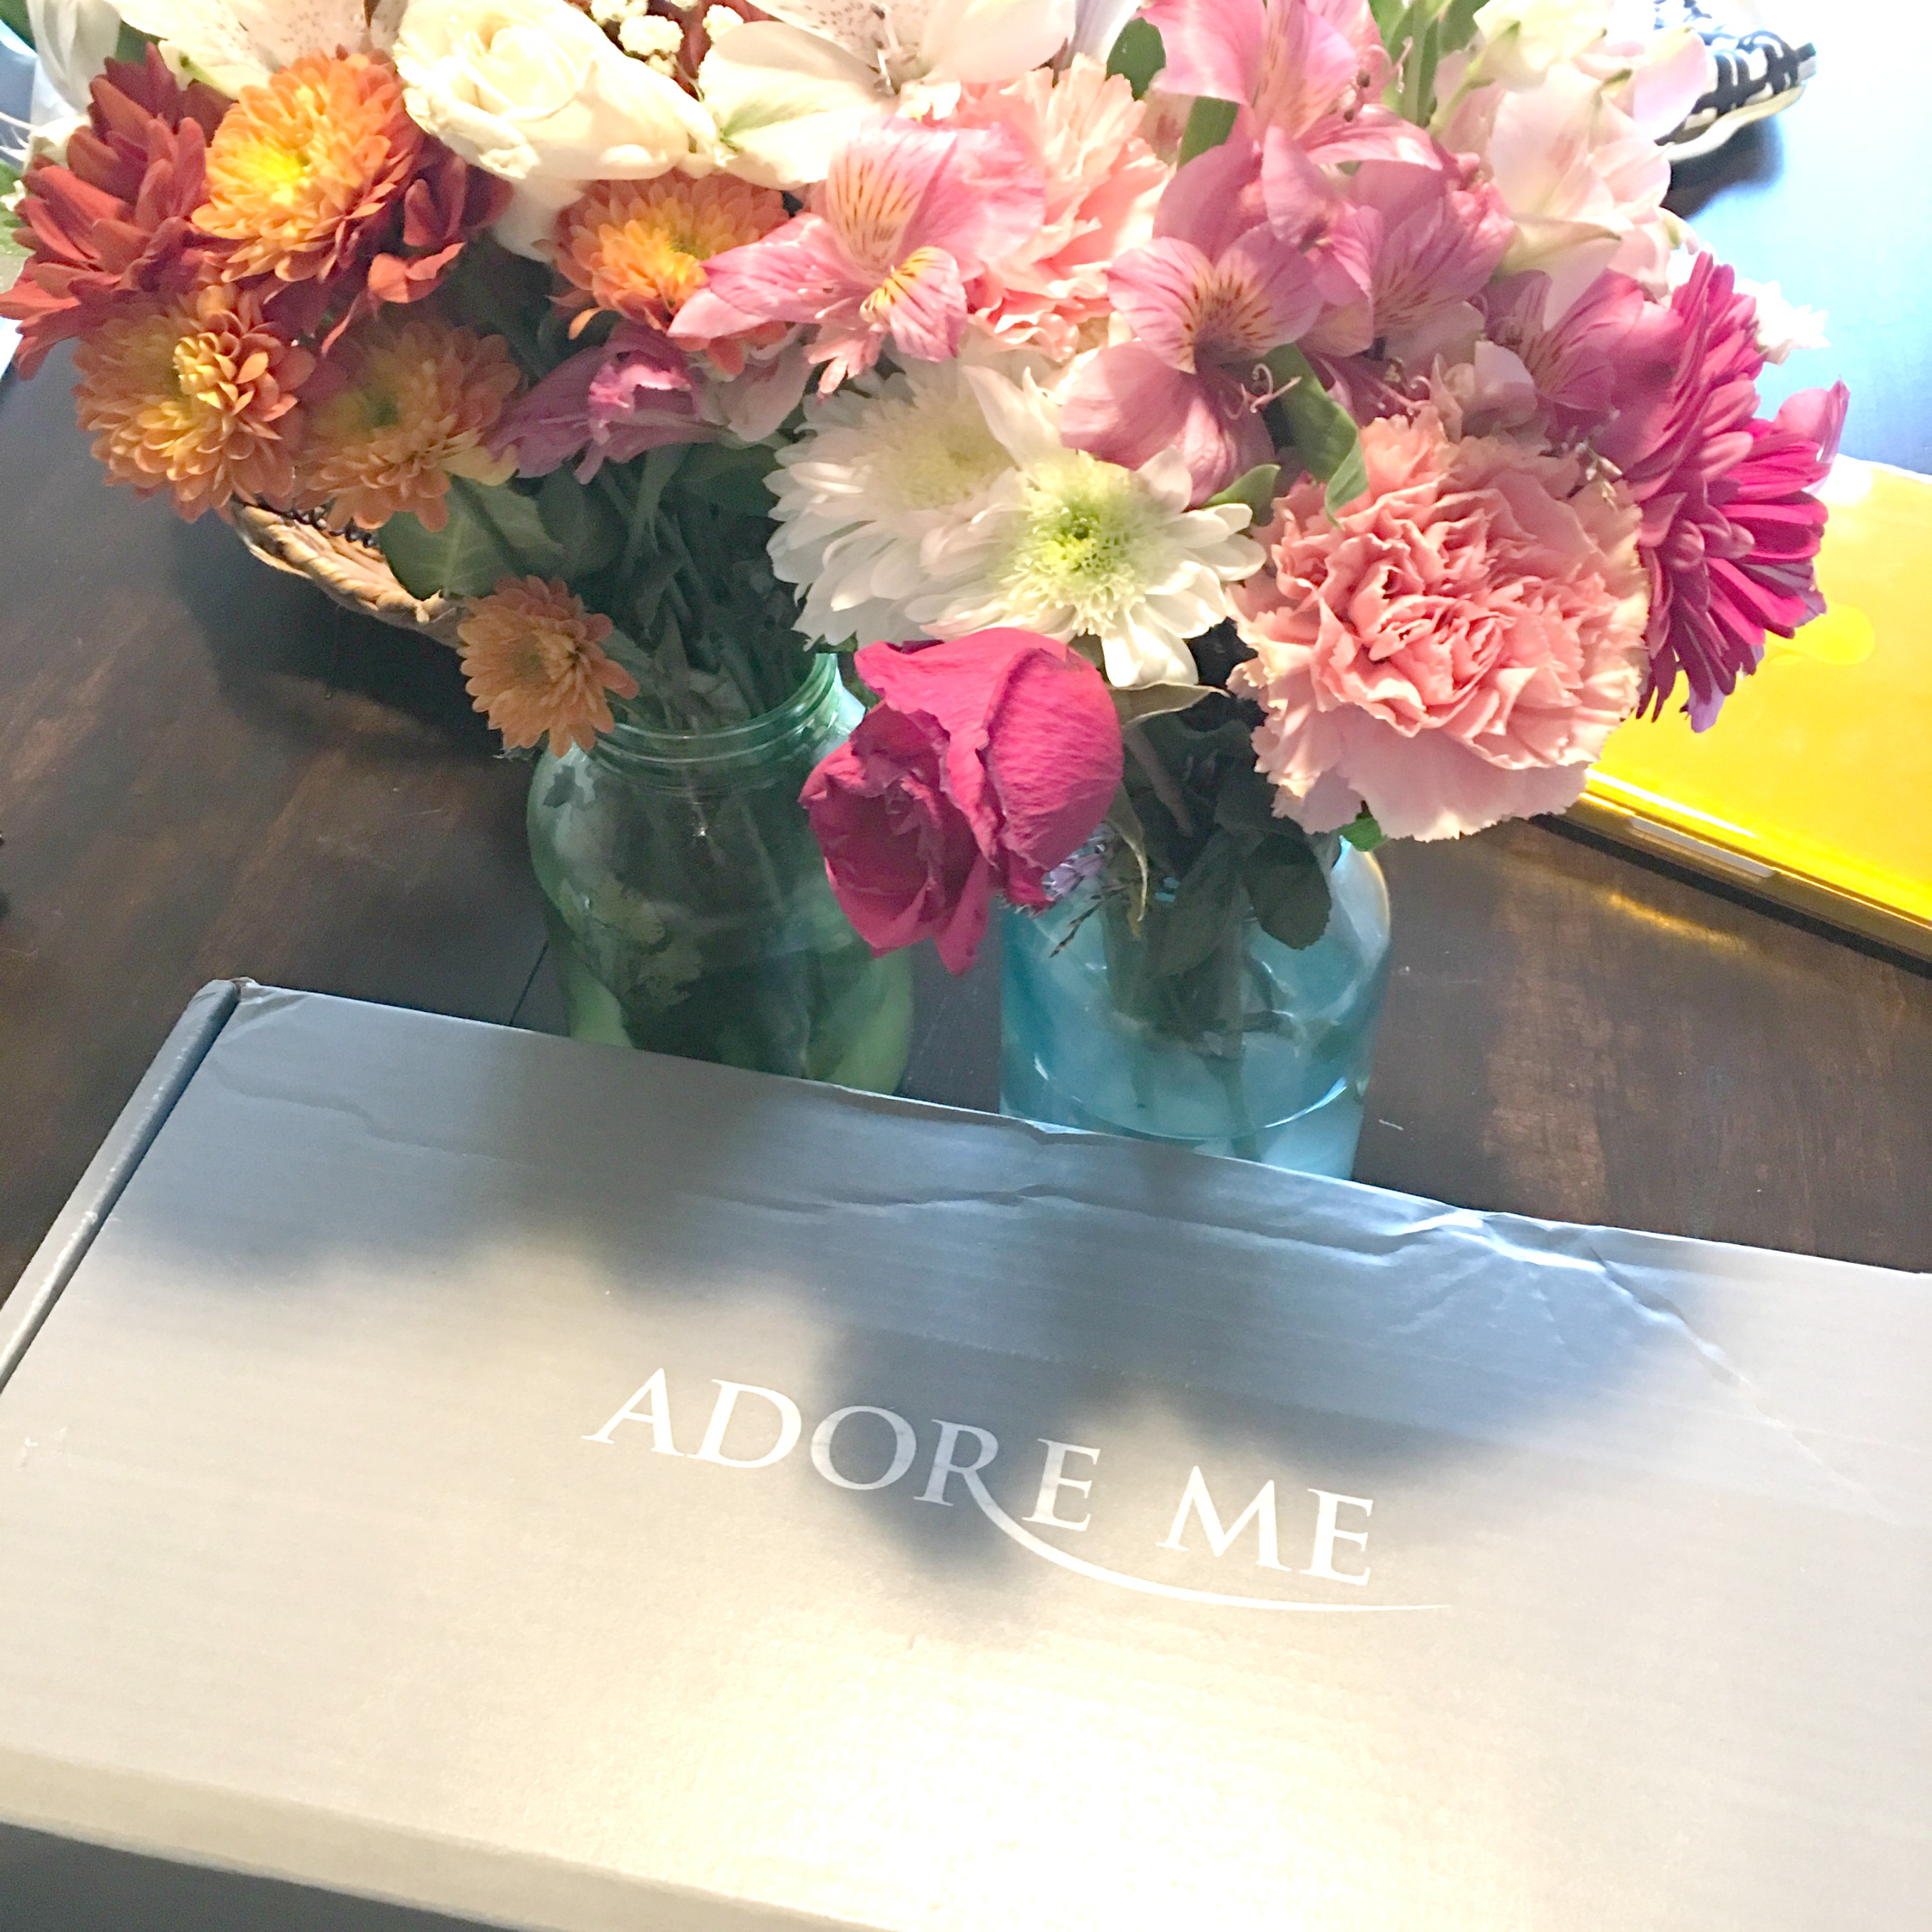 6754f9a6bbdc8 Adore Me is an amazing way to shop for lingerie online no matter what shape  or size that you have. They have over 500 styles that you can choose from  in a ...